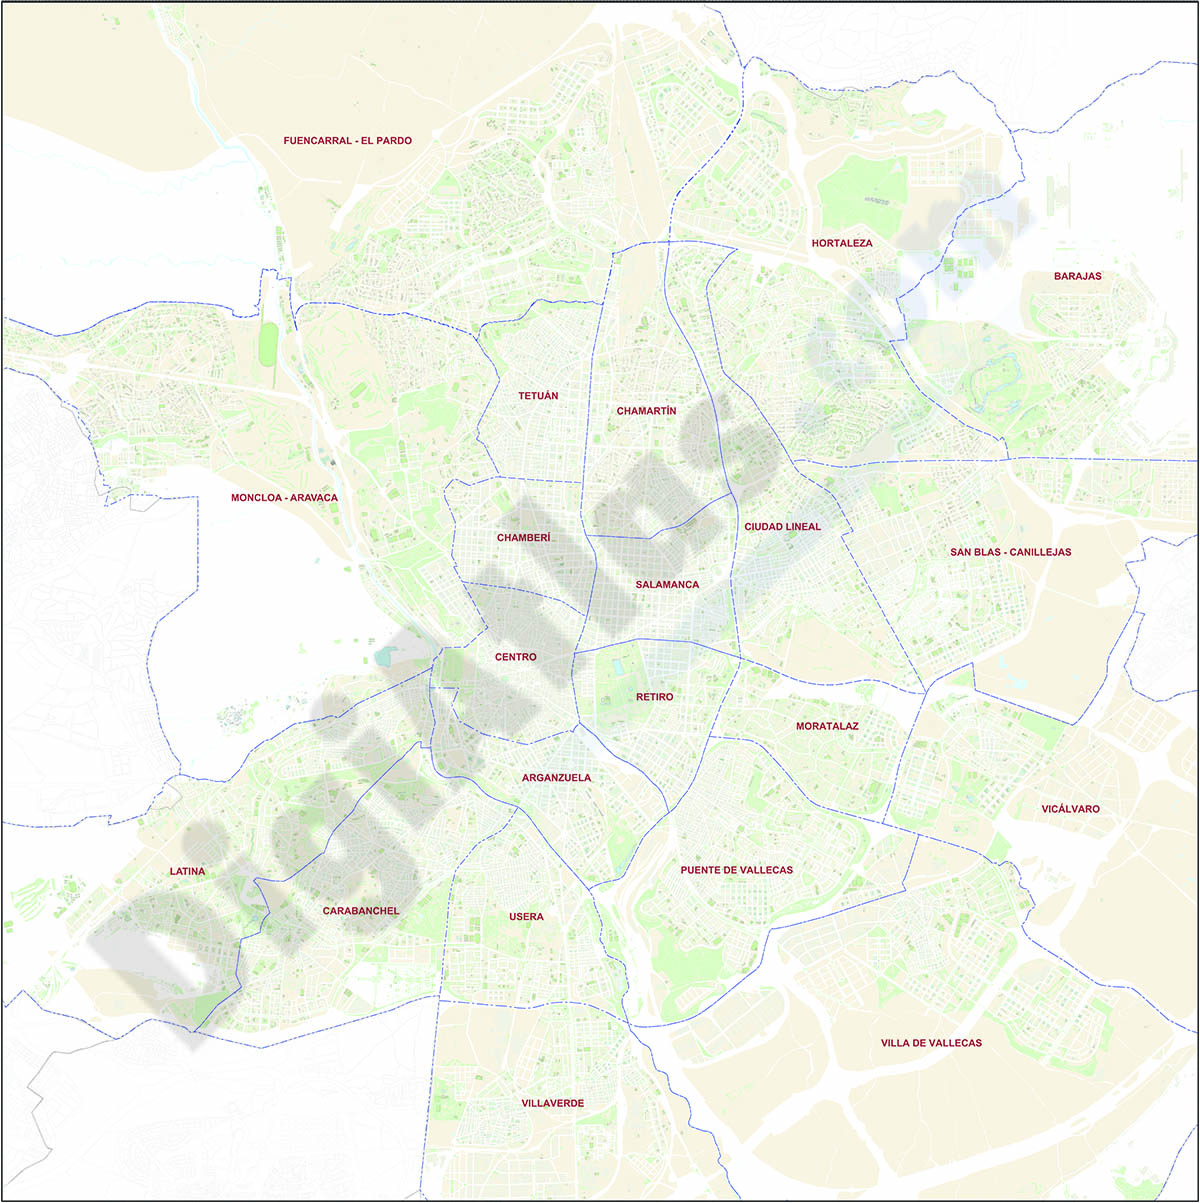 Detailed street map of Madrid with districts